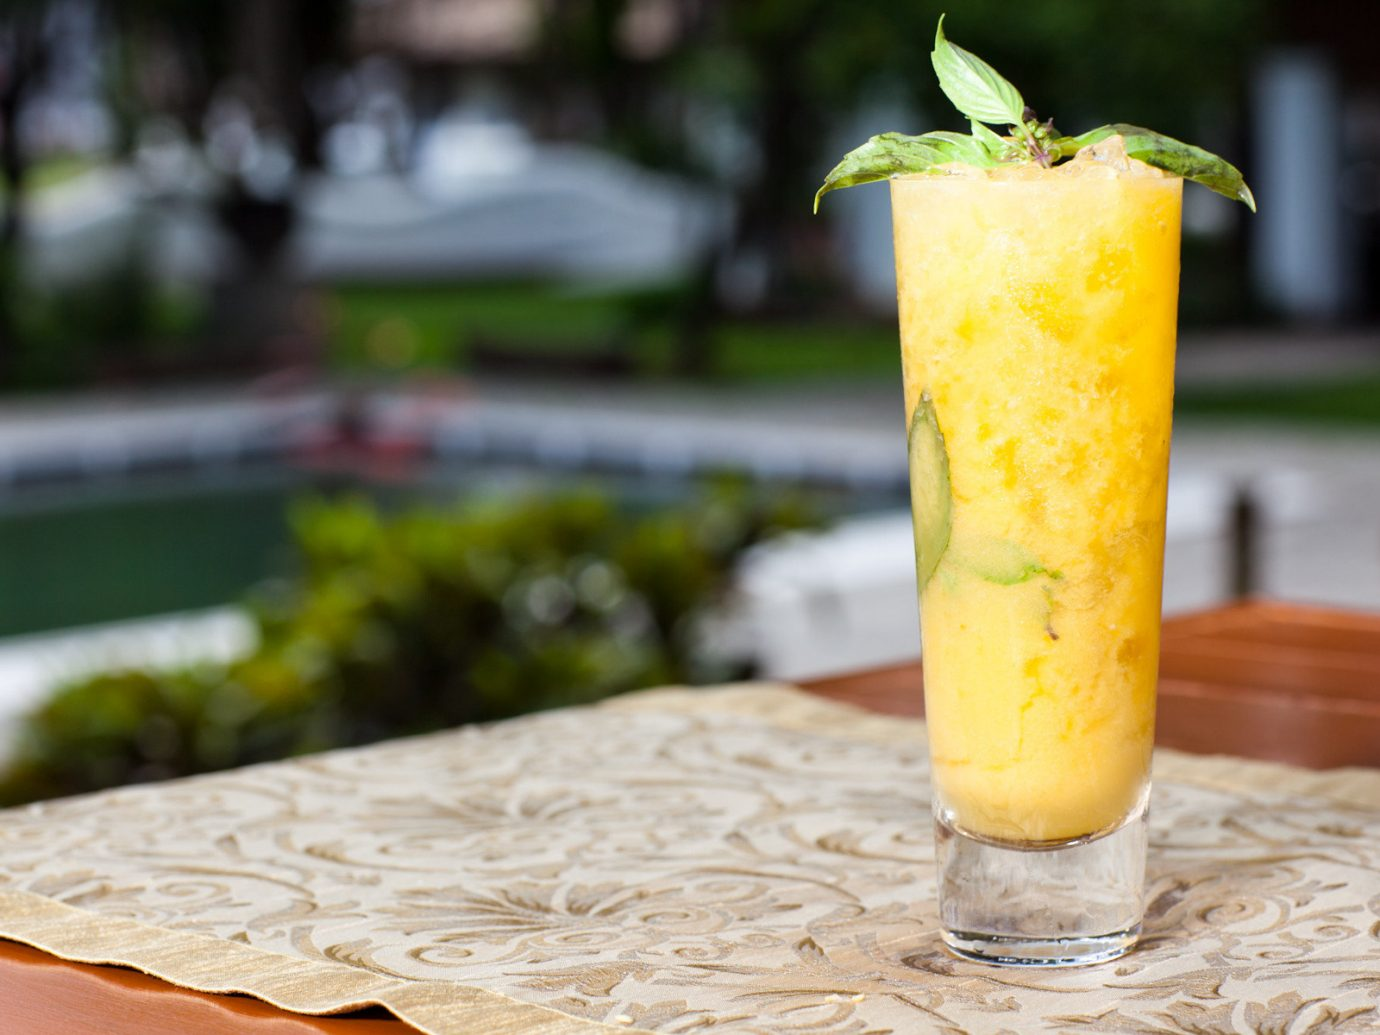 Romance Trip Ideas cup food yellow plant Drink produce land plant cocktail flowering plant fruit pineapple smoothie beverage